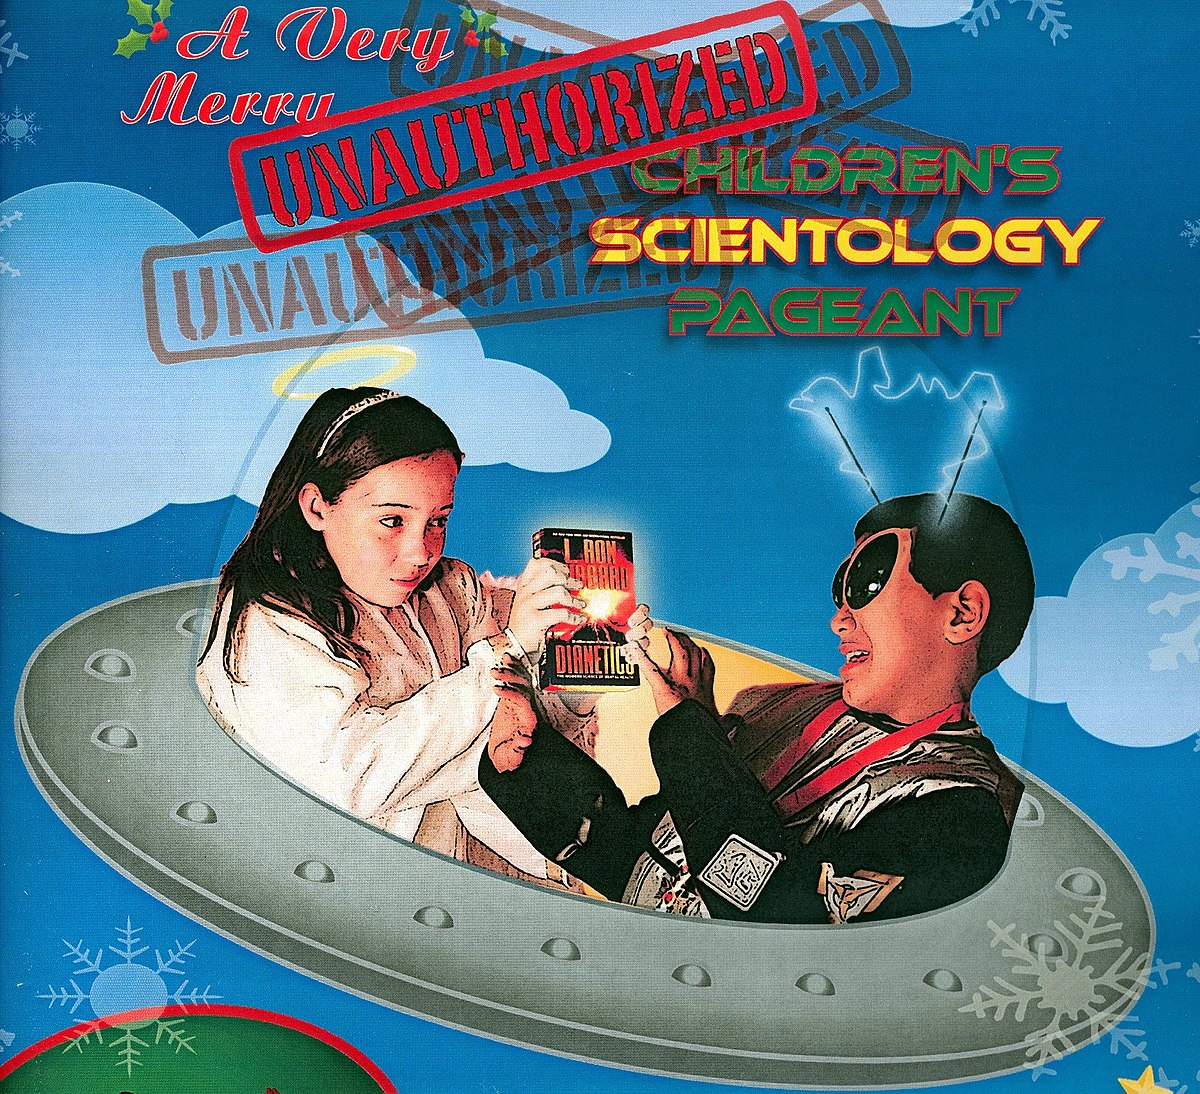 A Very Merry Unauthorized Children's Scientology Pageant - Wikipedia